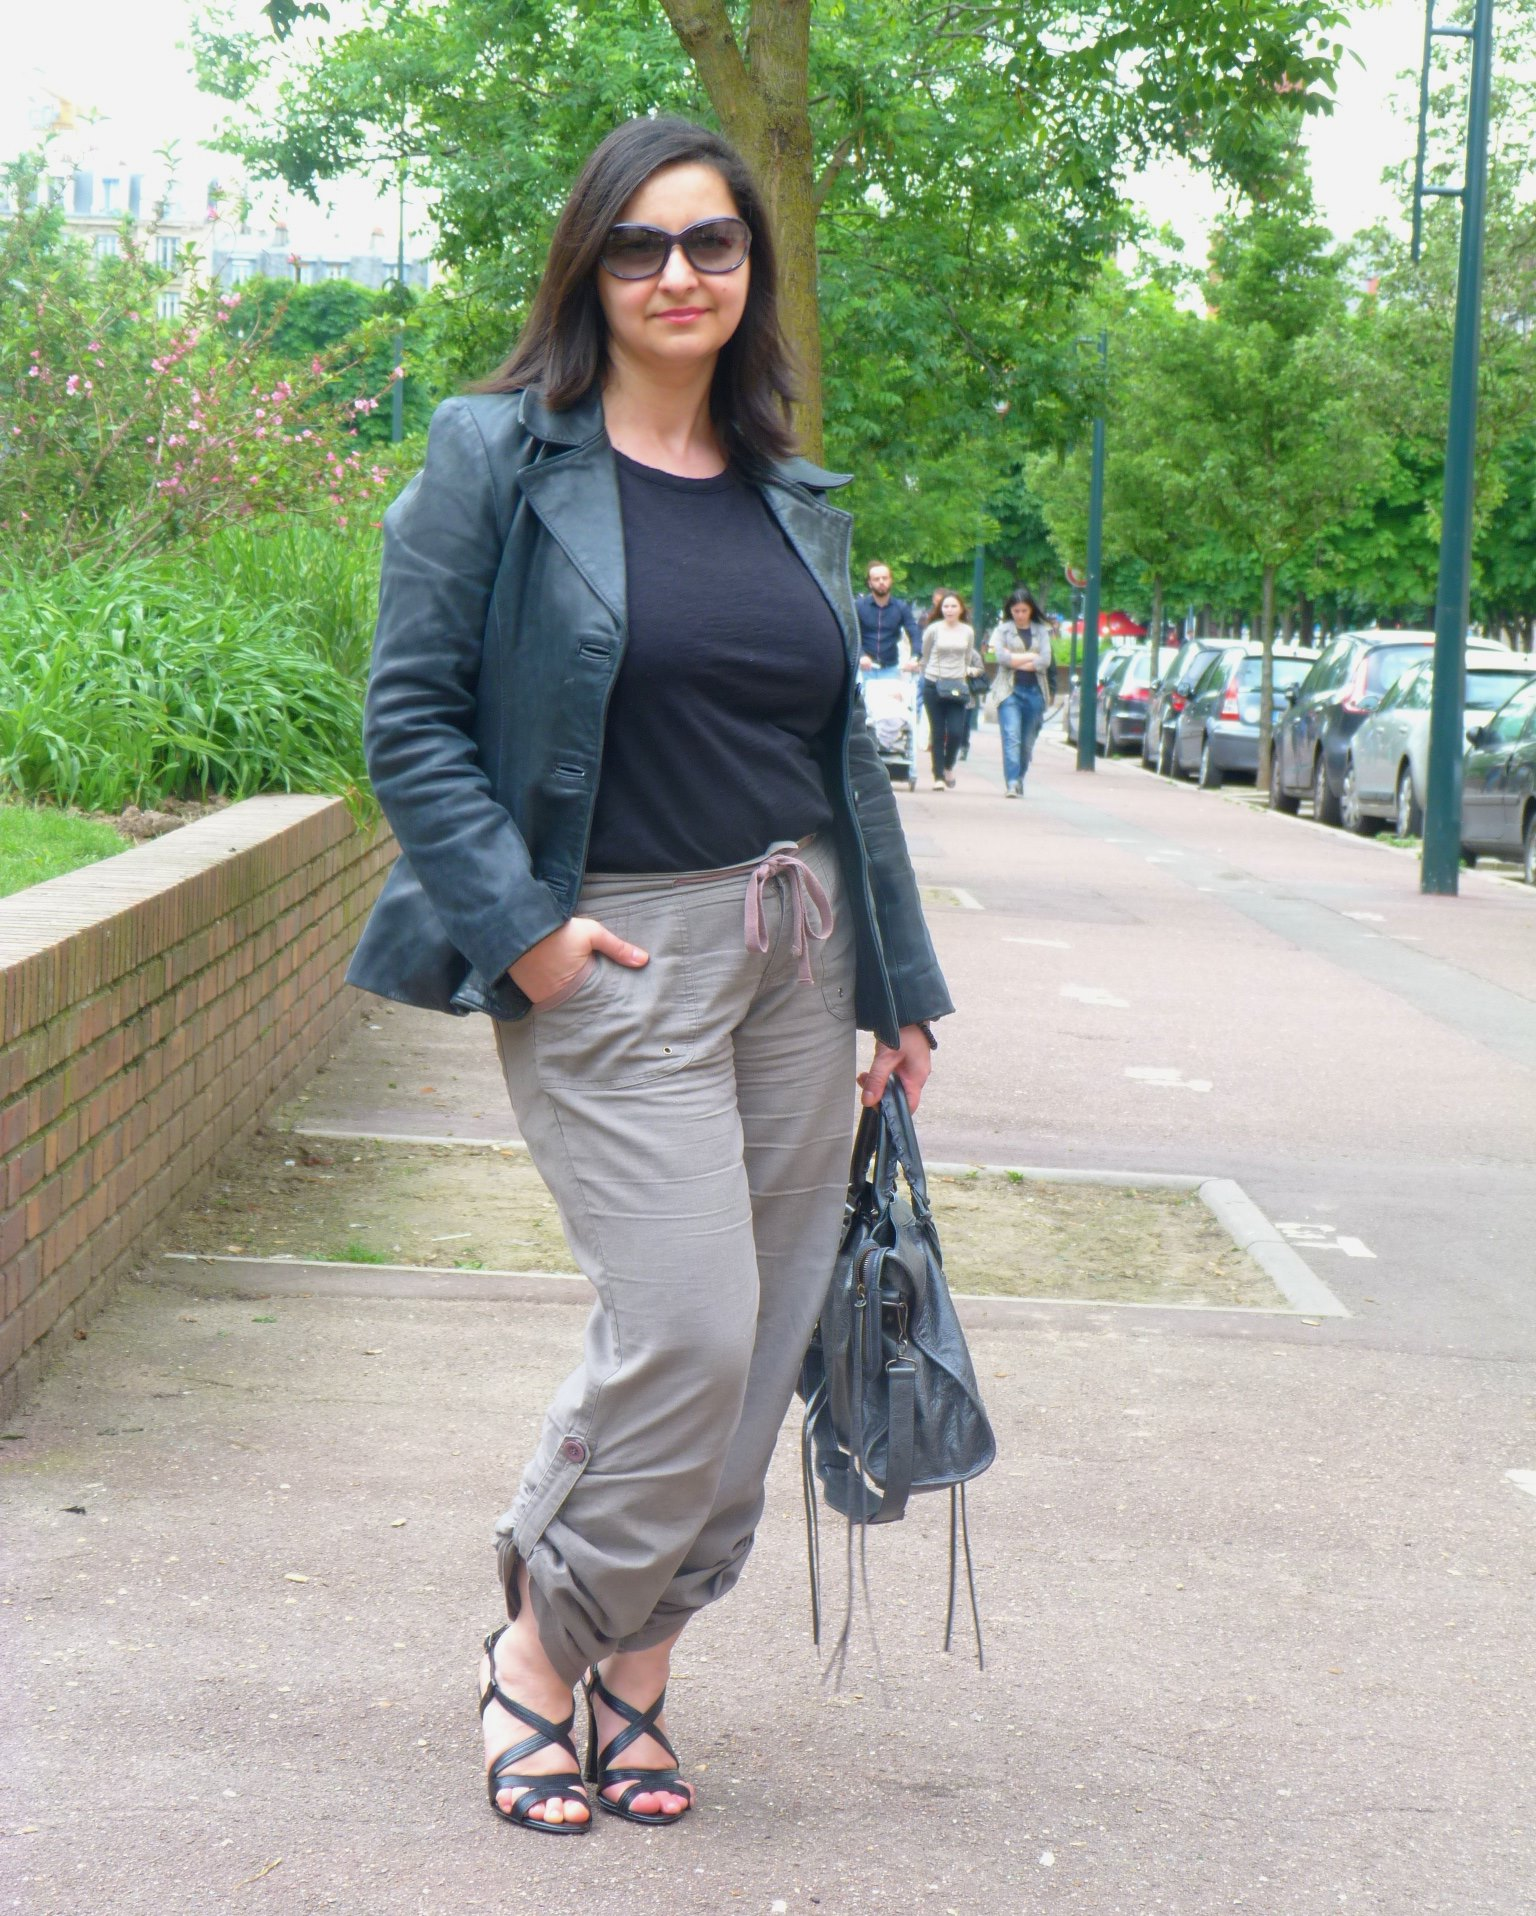 Baroudeuse chic, army pant